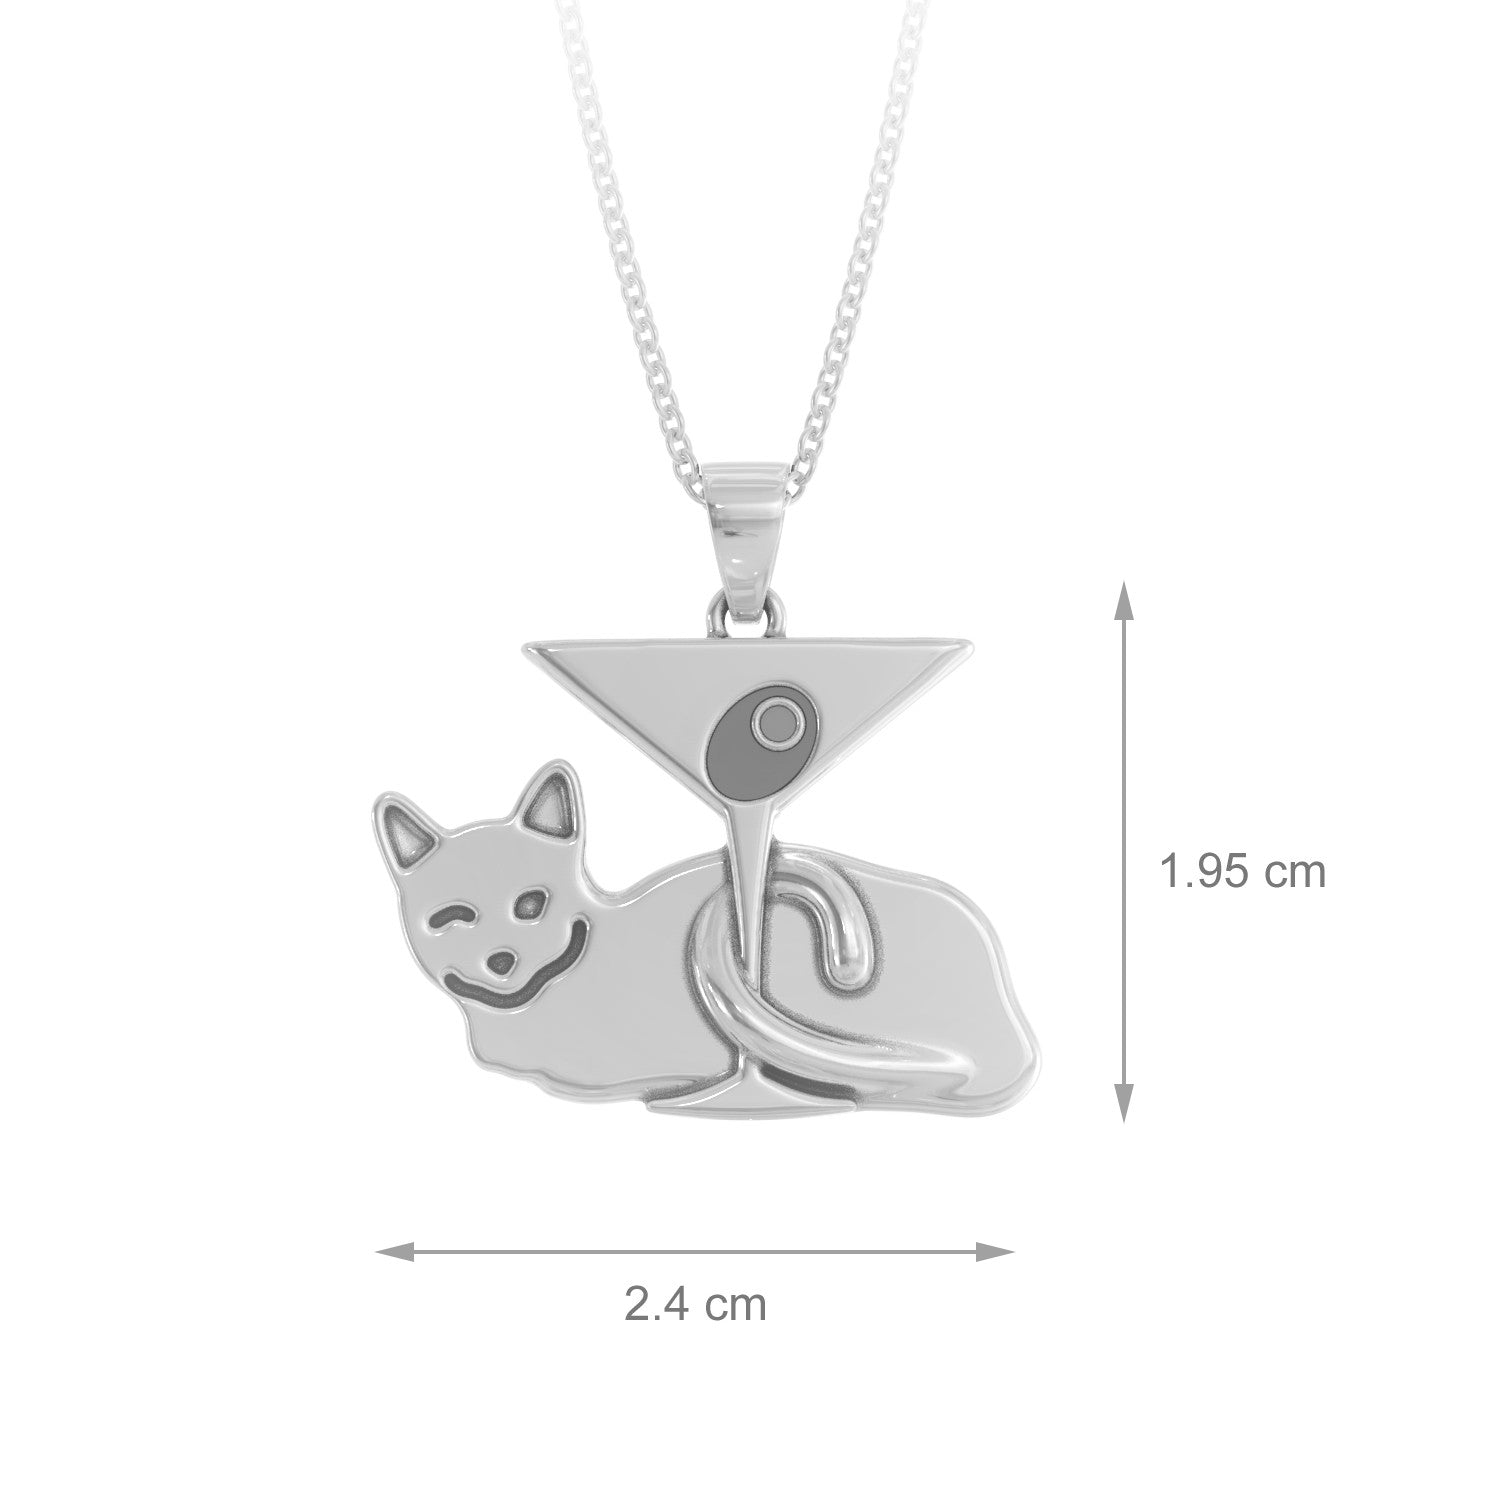 Kitty Martini Necklace